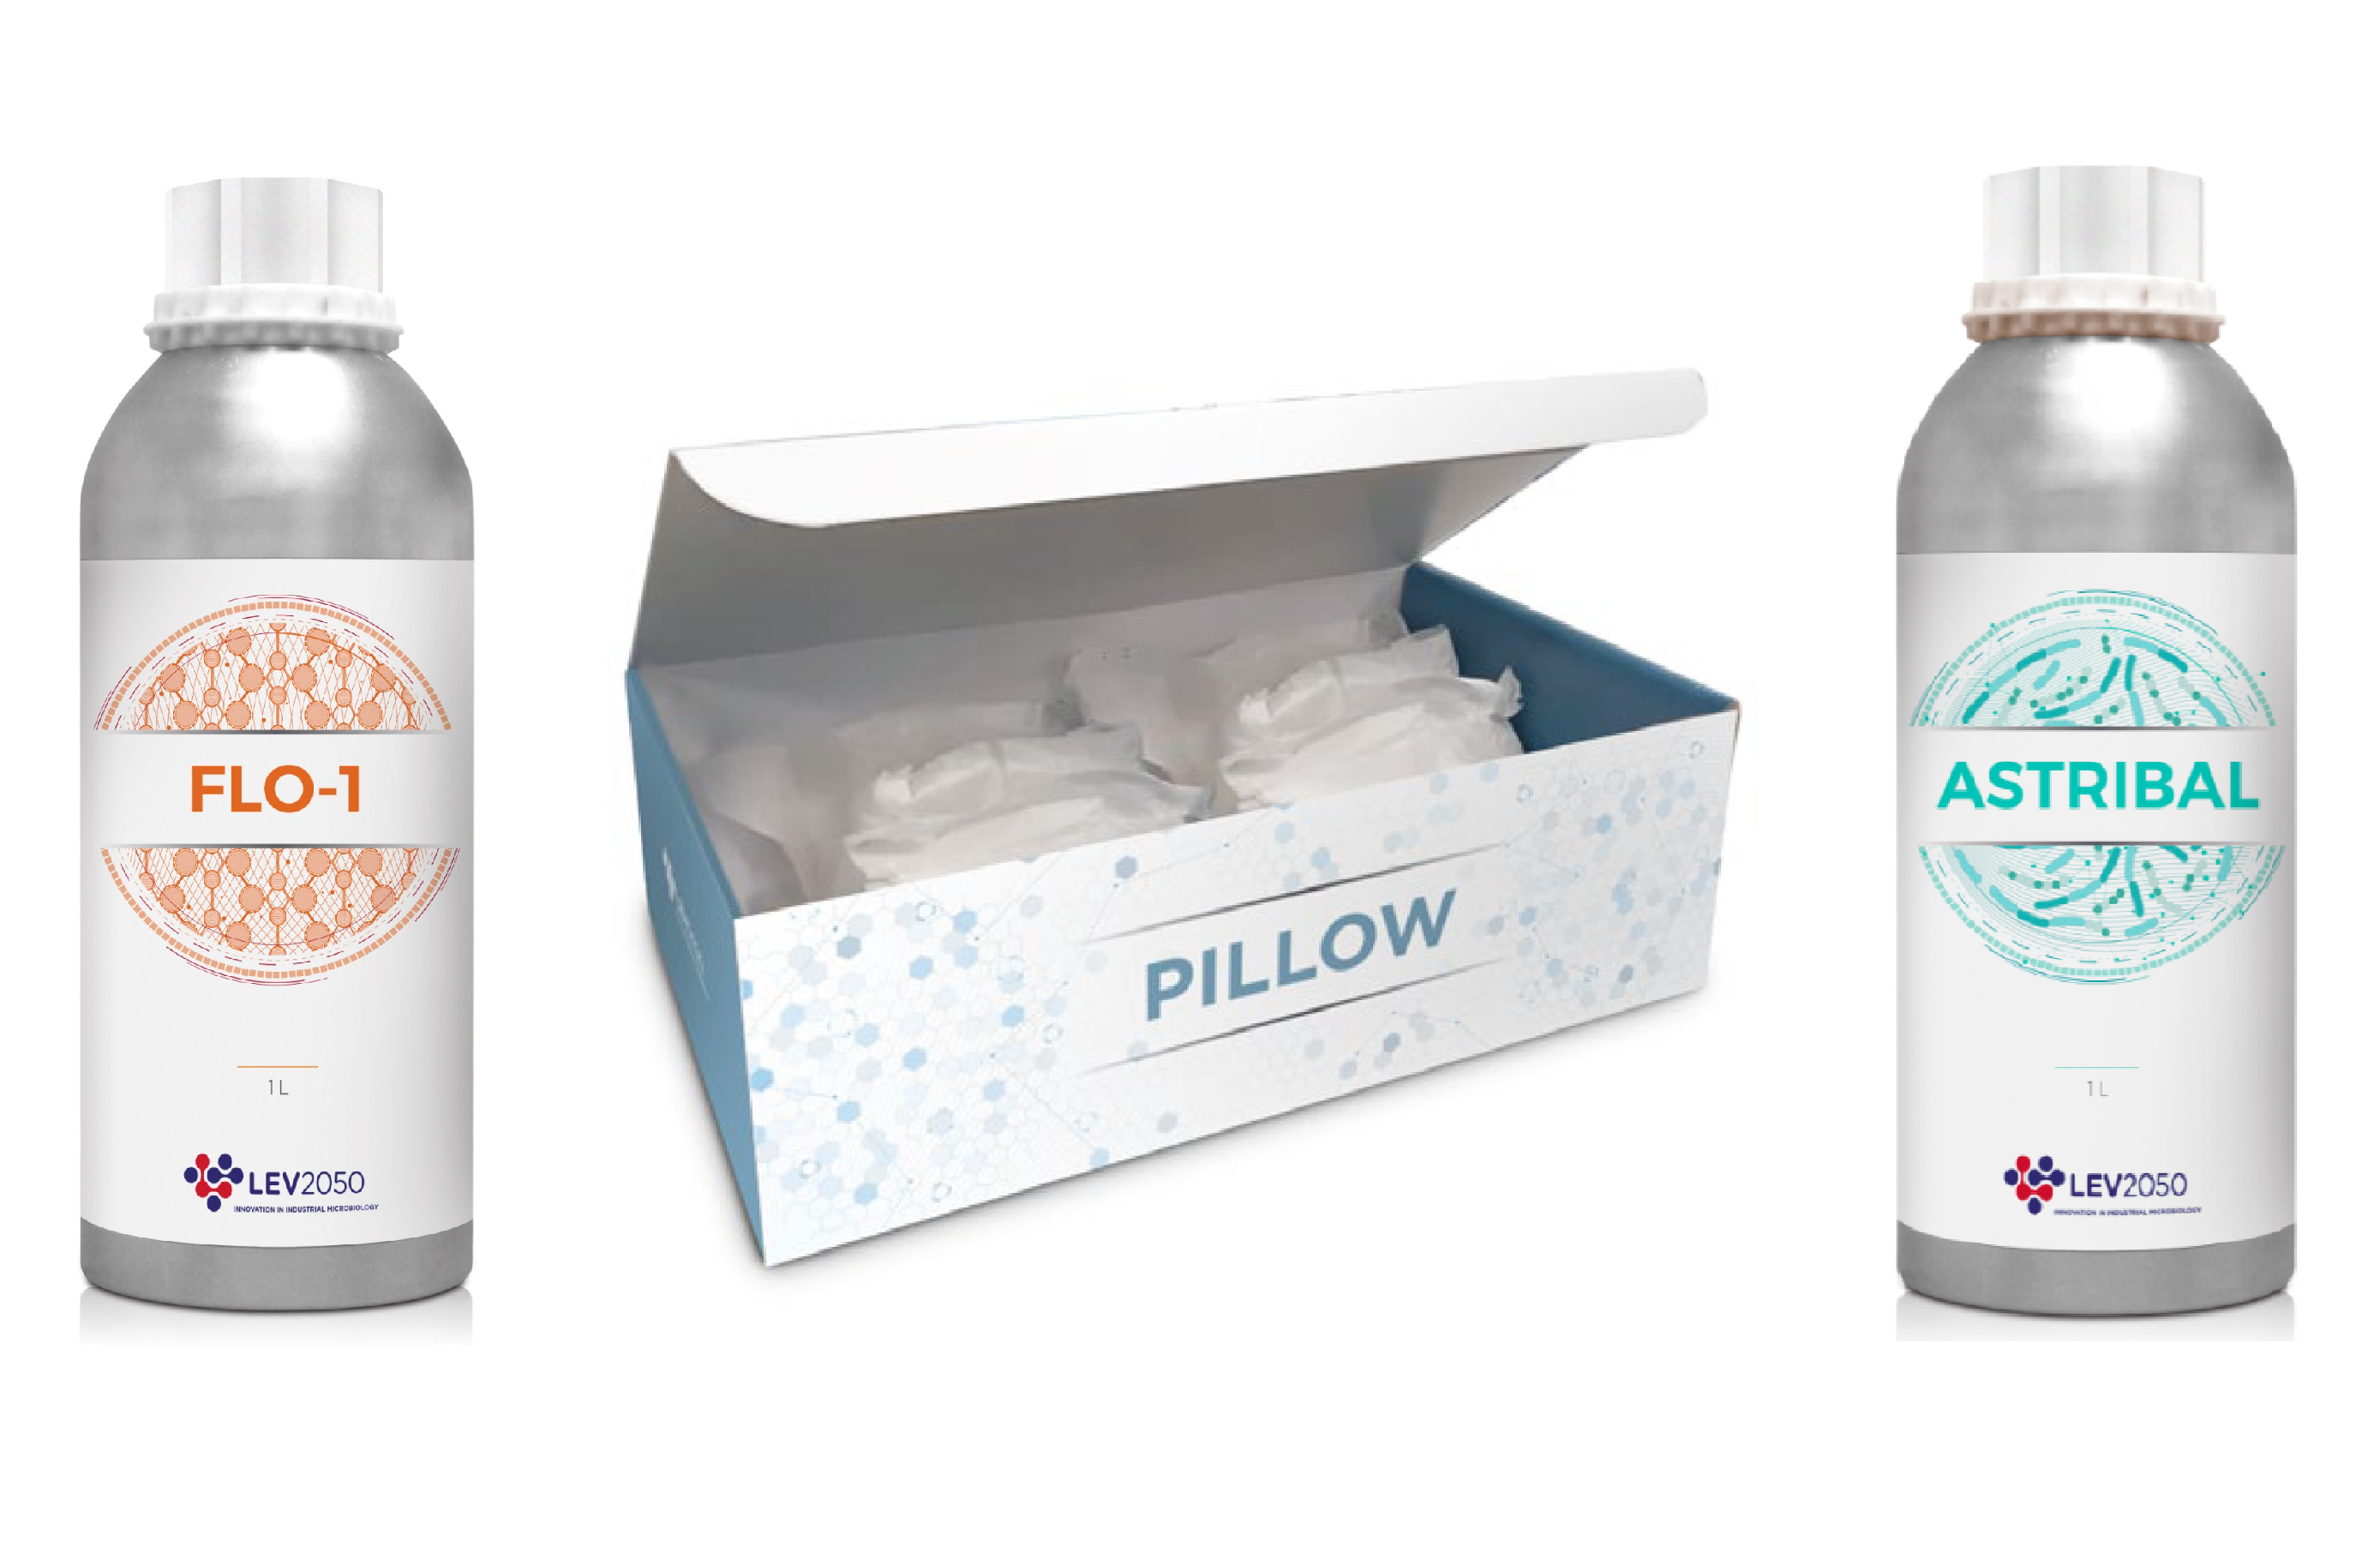 Oenological products: FLO-1, PILLOW and ASTRIBAL